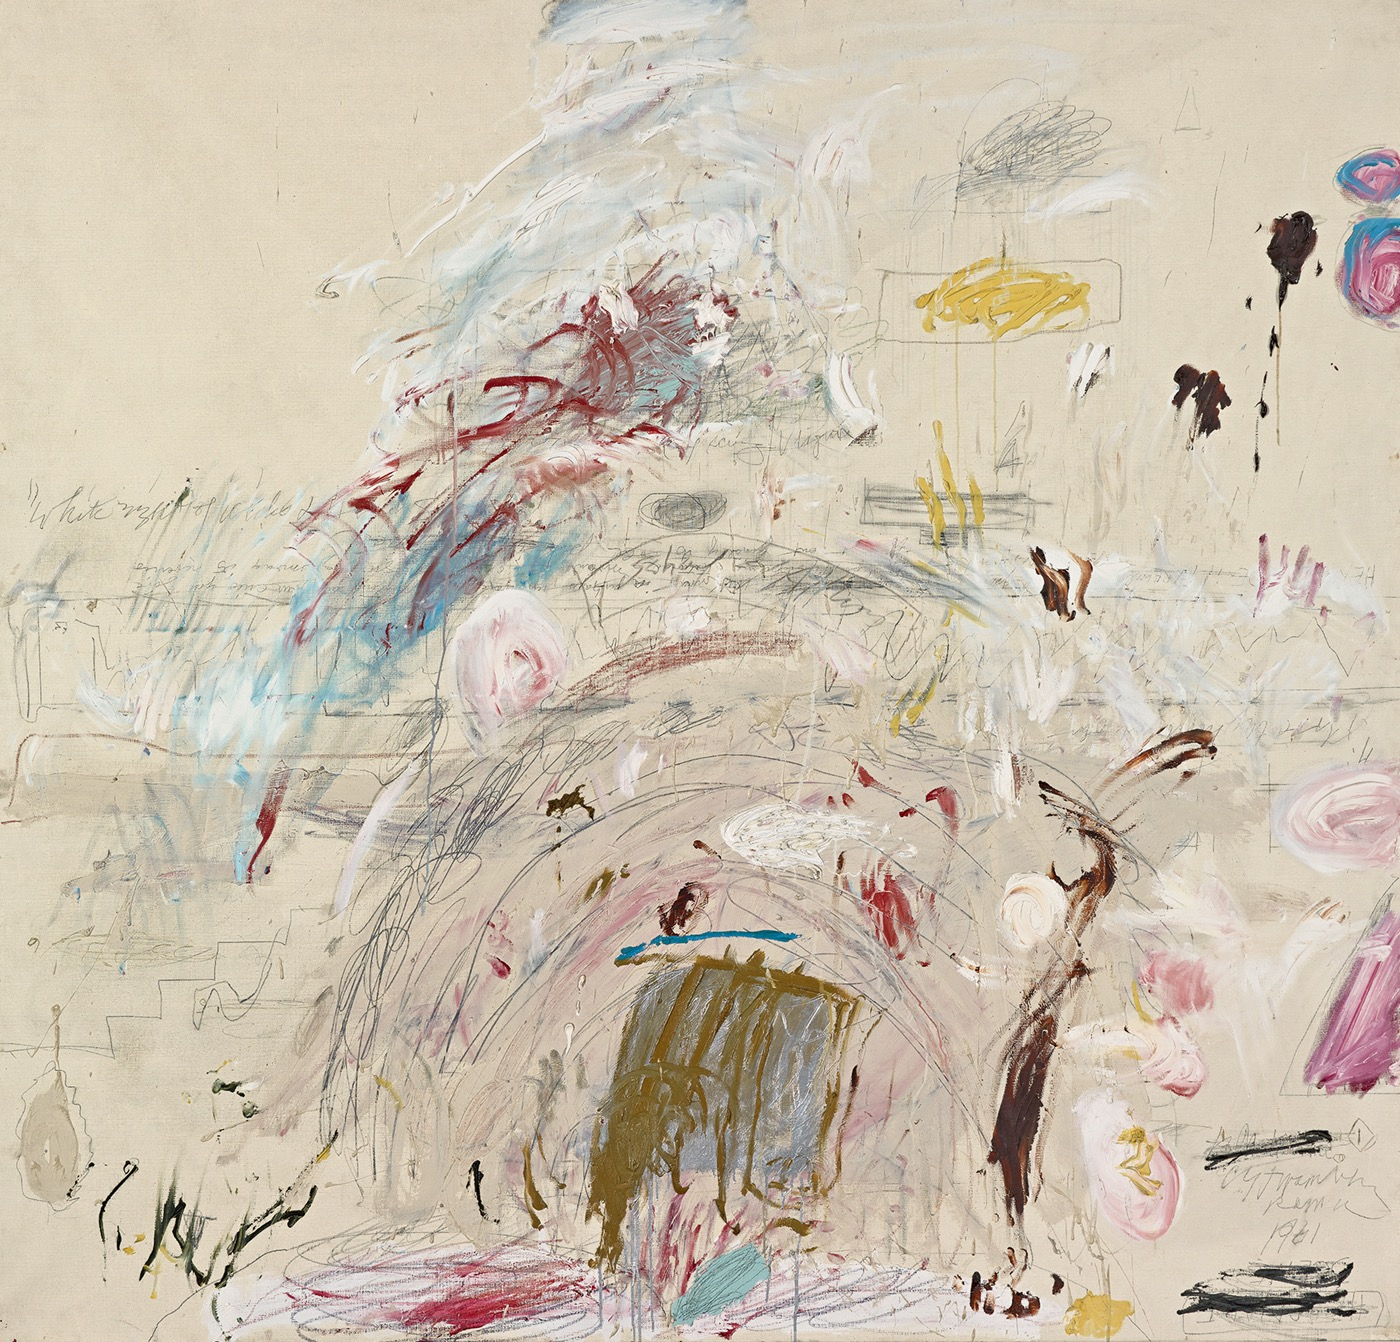 Cy Twombly, School of Athens, 1961, oil, oil-based house paint, colored pencil and lead pencil on canvas, 190.3 x 200.5 cm (© Robert Bayer, Bildpunkt AG, Munchenstein)